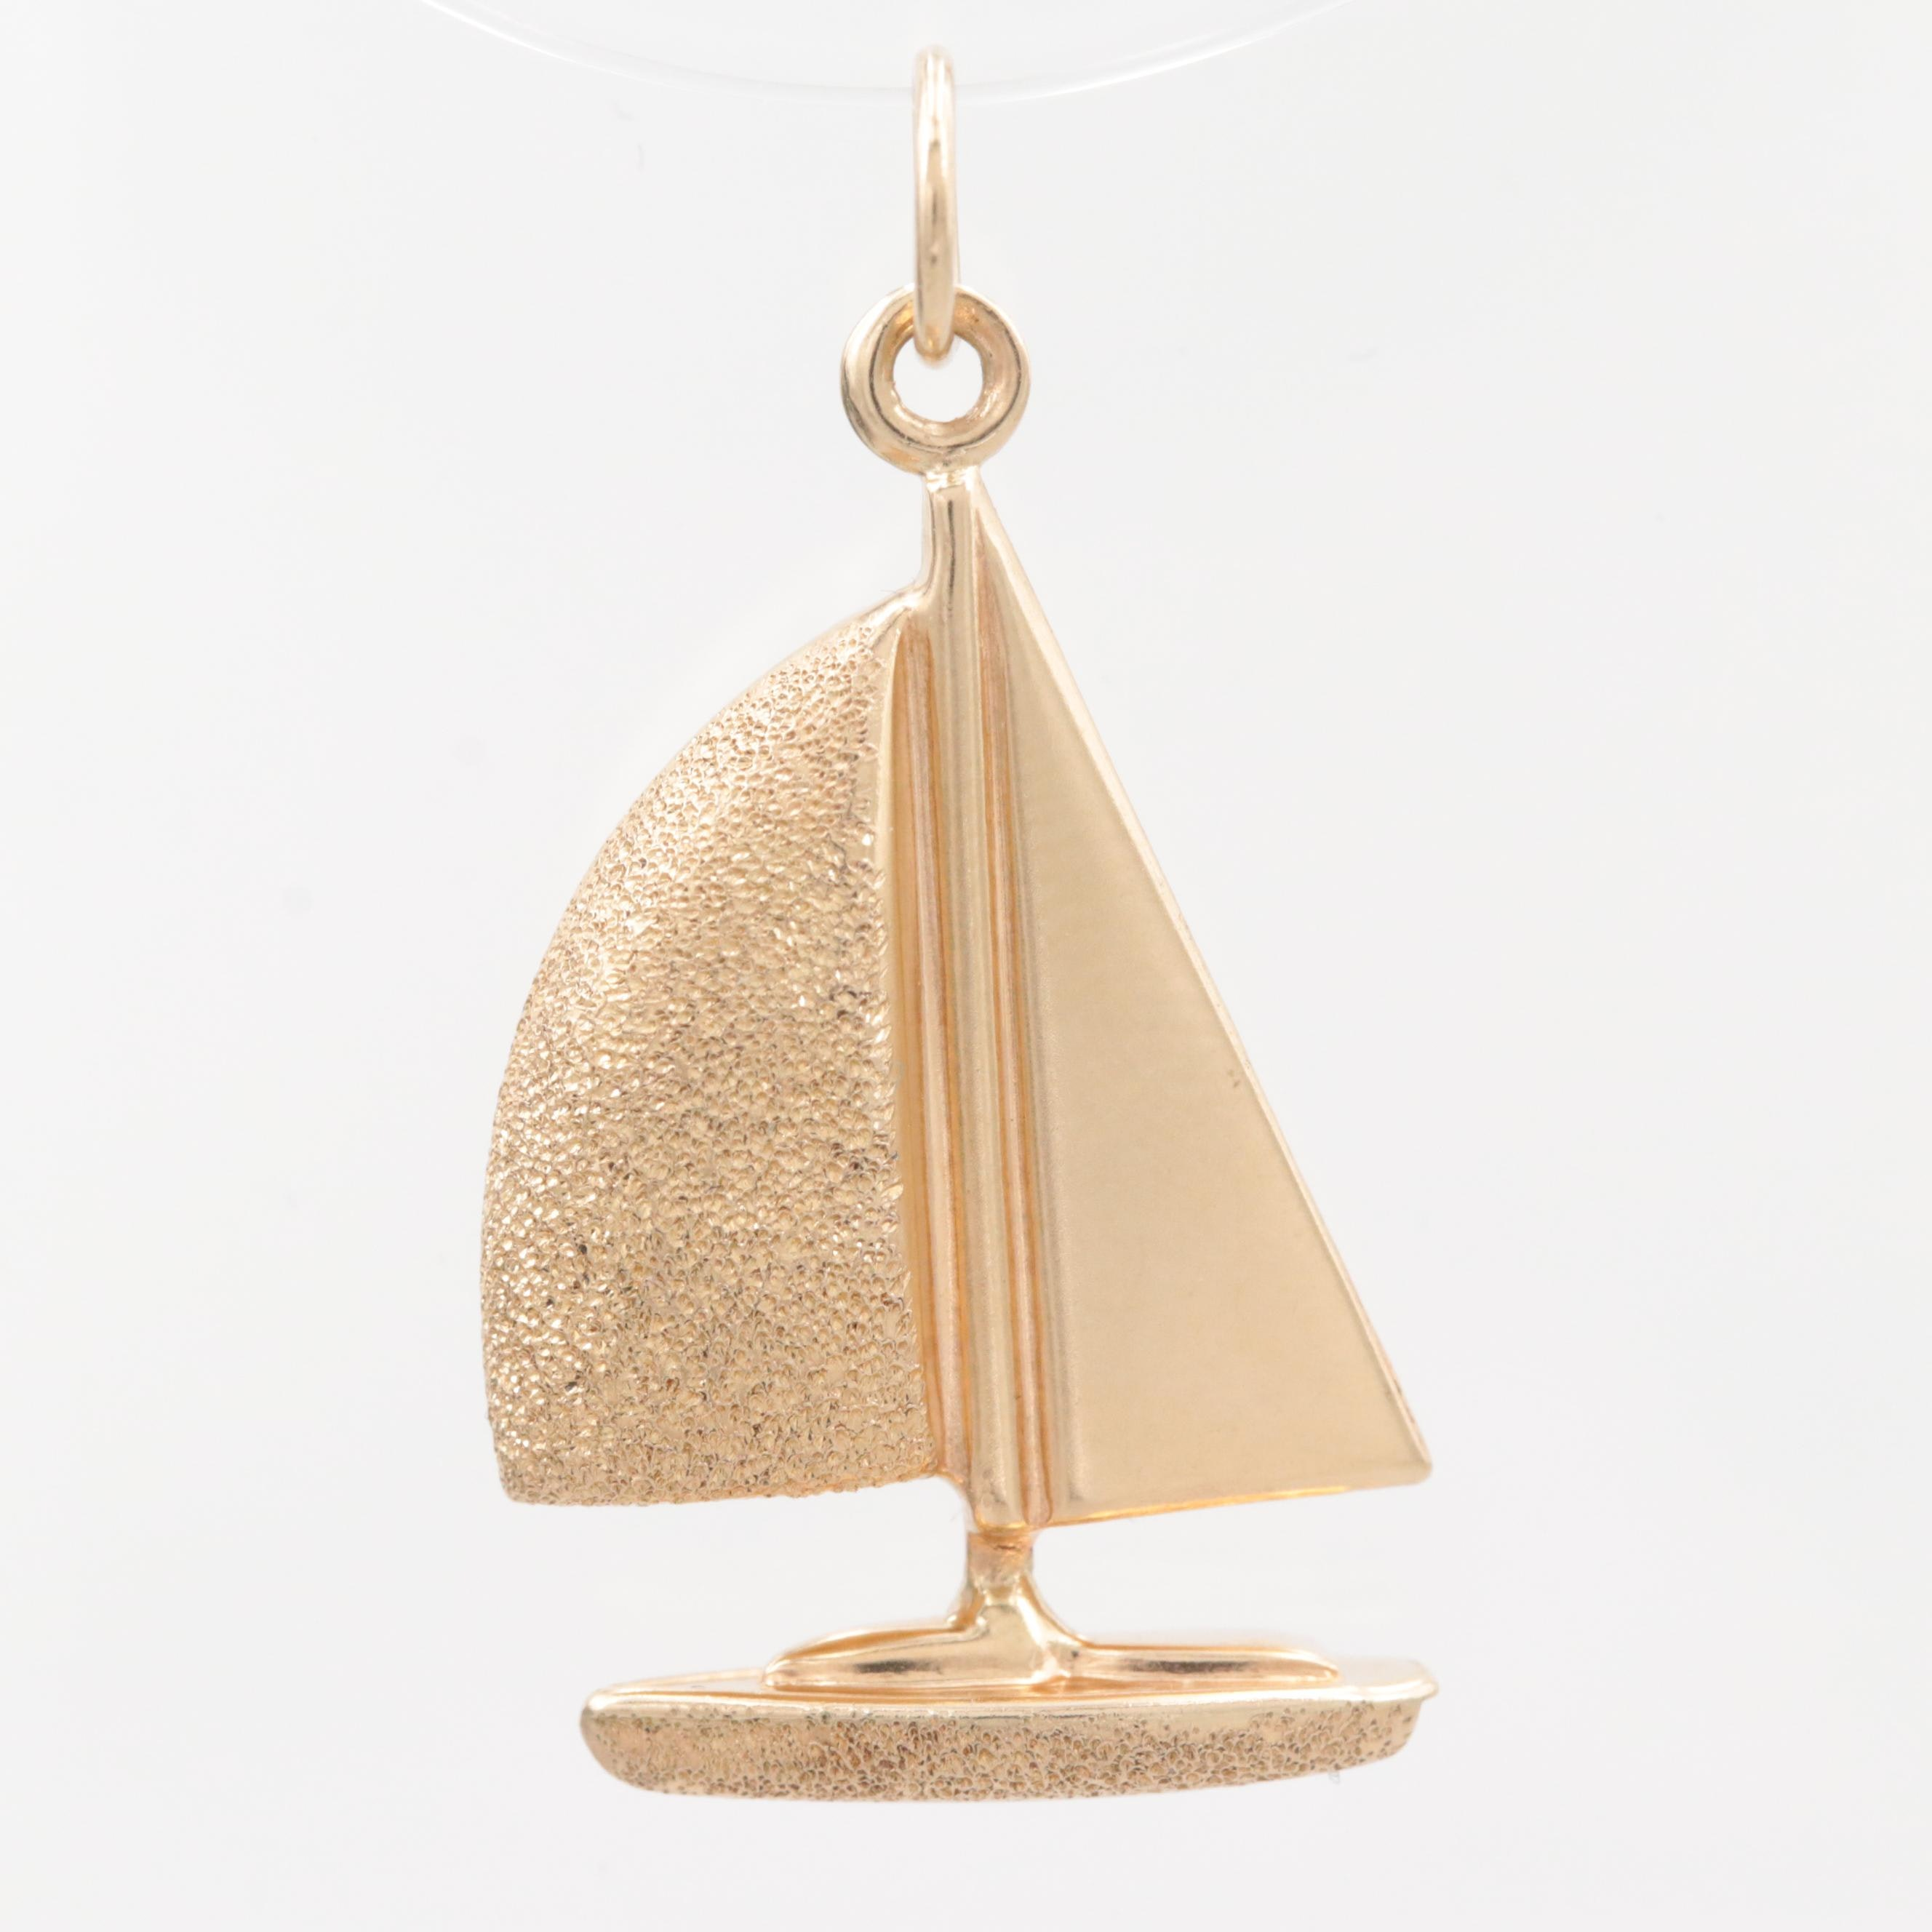 14K Yellow Gold Sailboat Pendant with Textured Accents